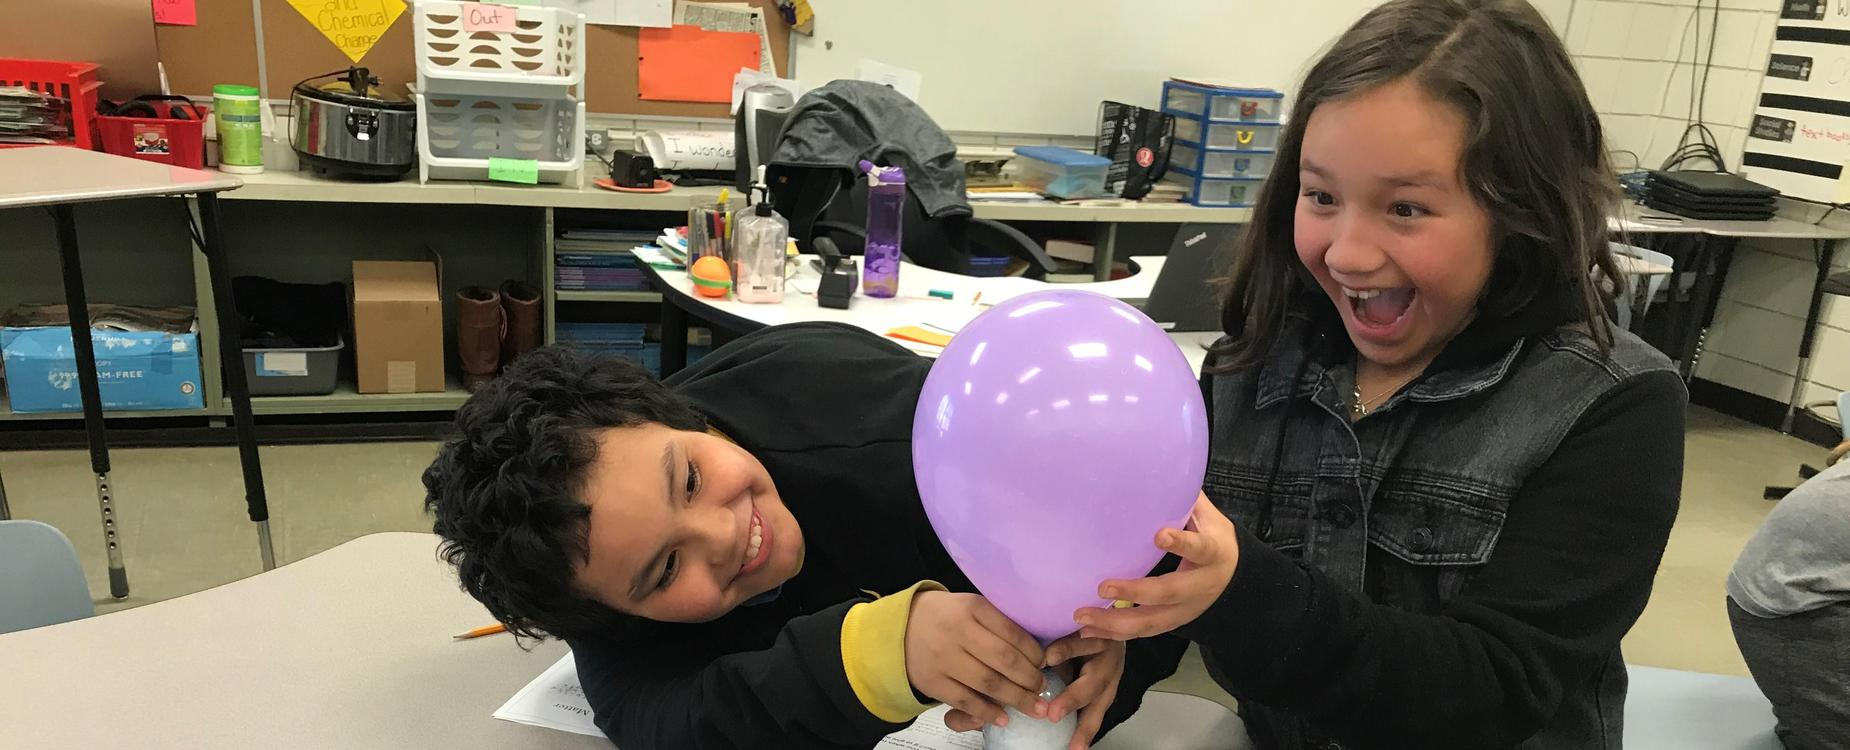 2 students do a science experiment with a balloon and water bottle